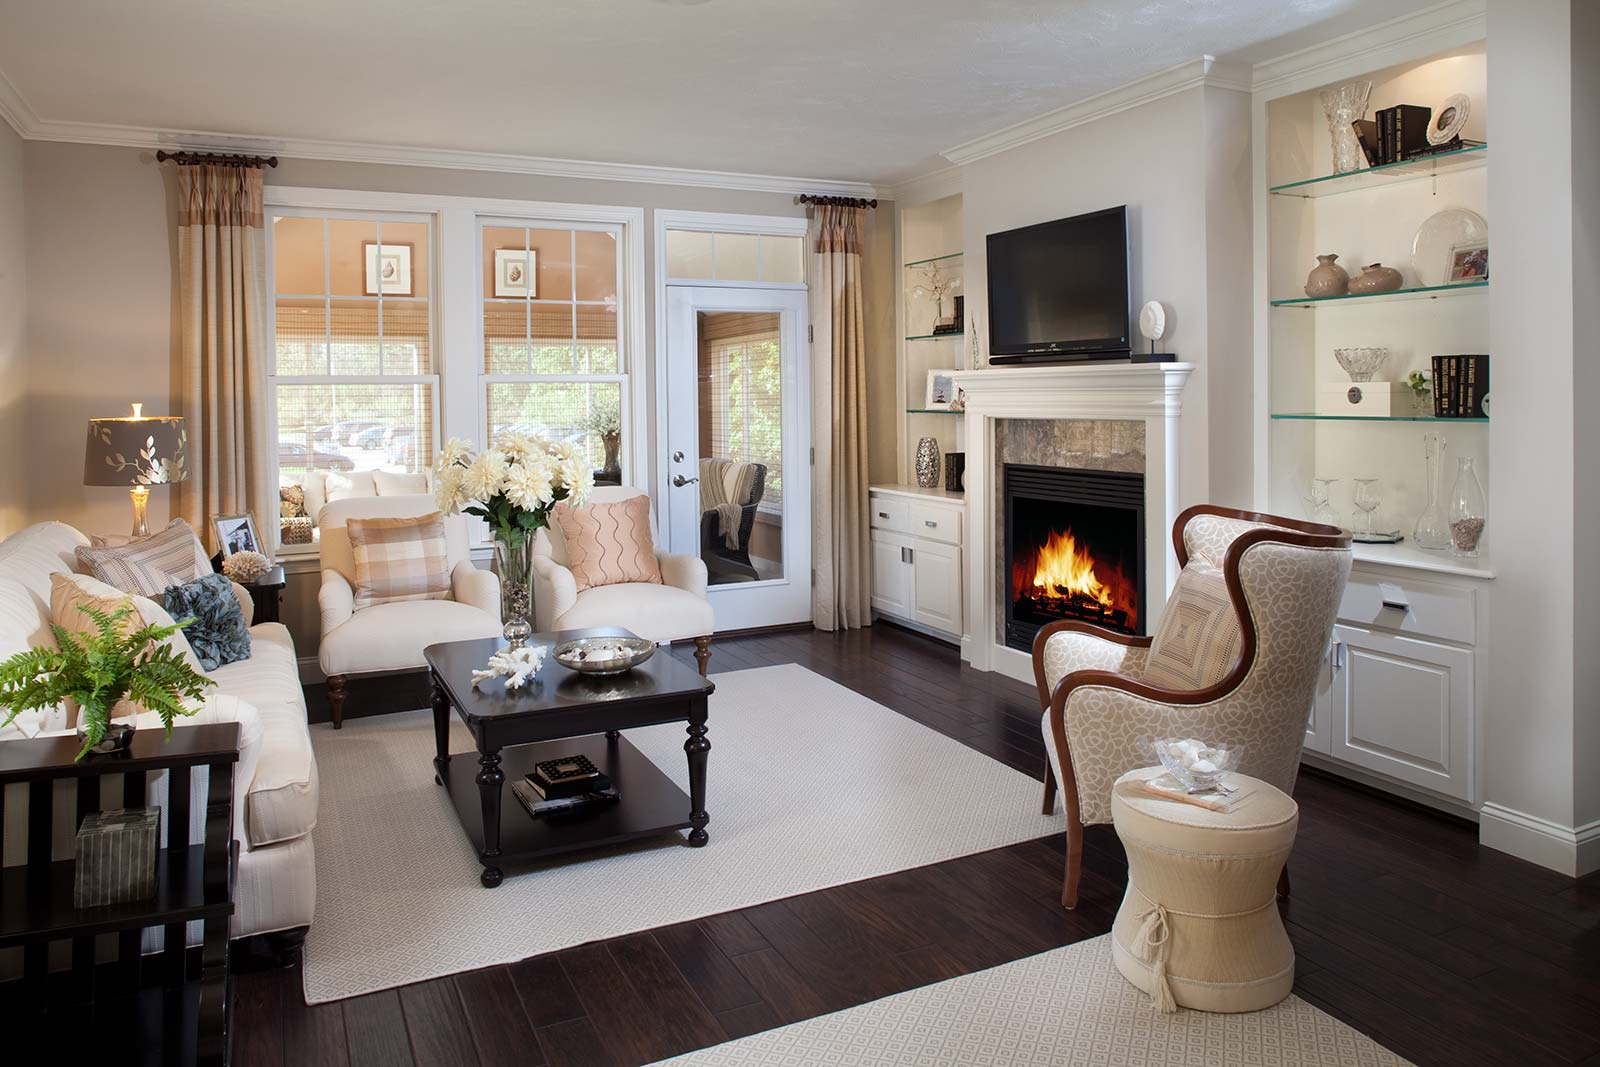 Fireplace Decorating Ideas For Your New Retirement Home On Cape